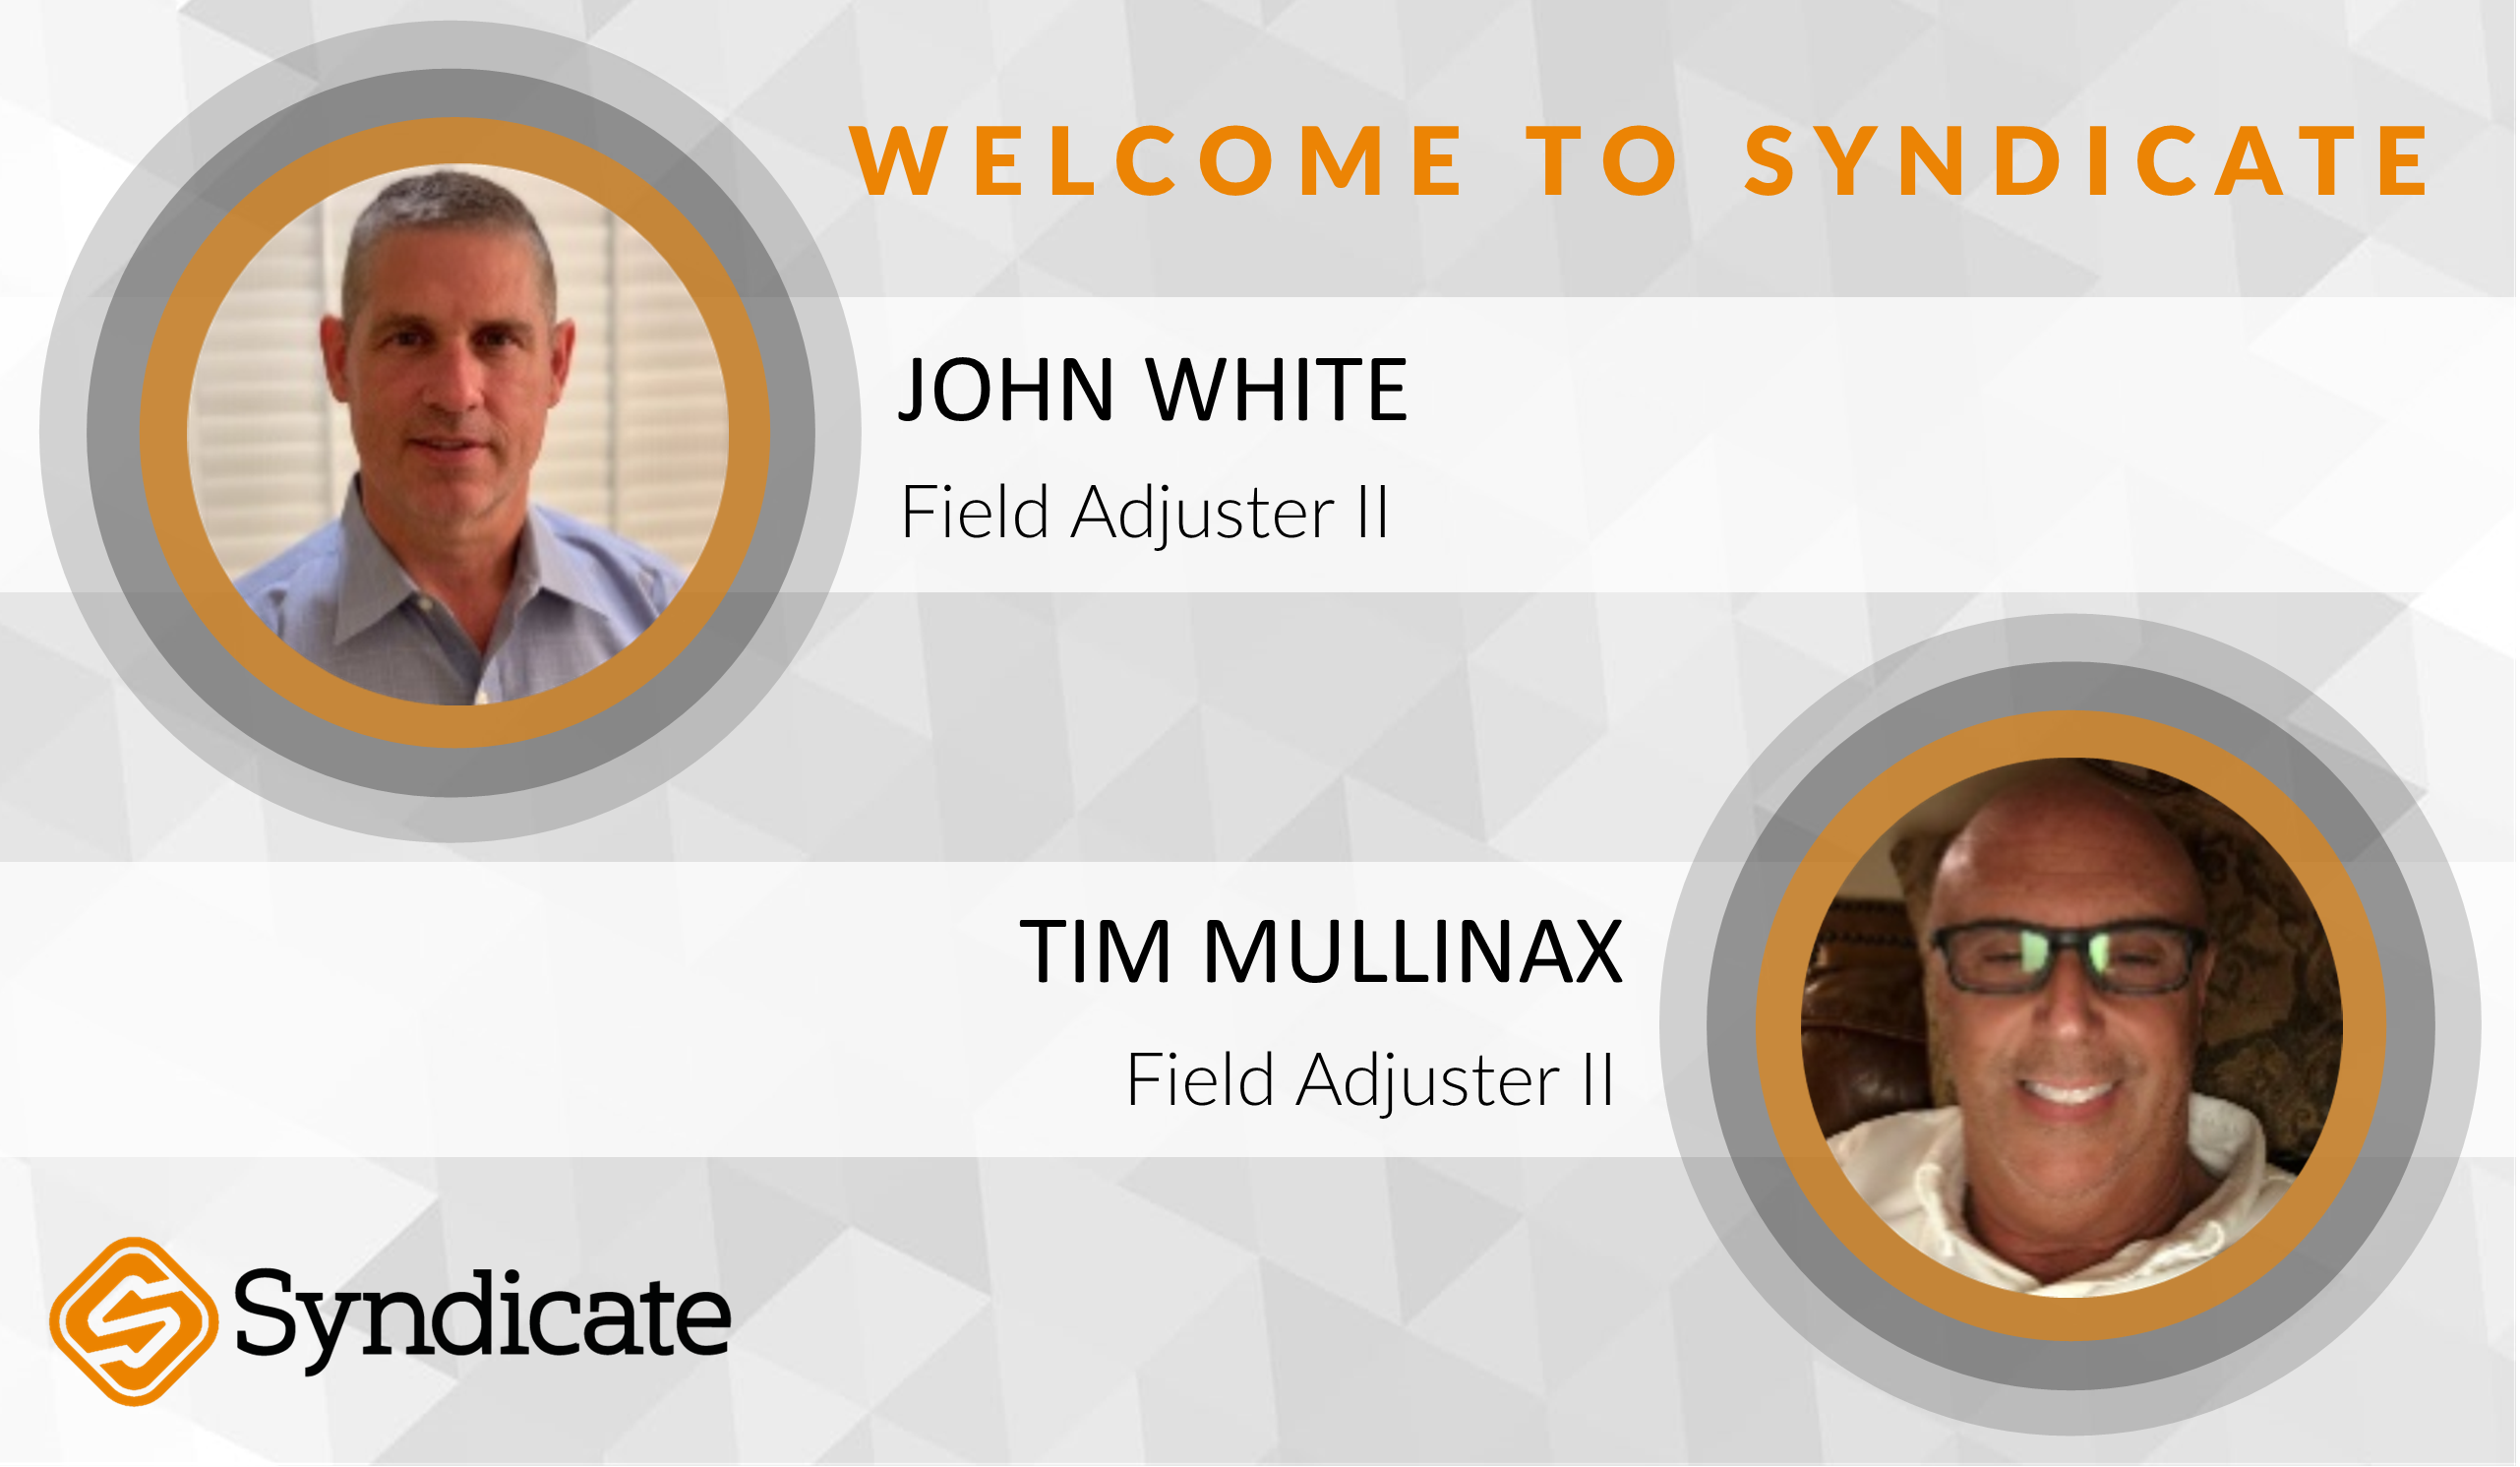 Syndicate Onboards New Staff - Syndicate Claims